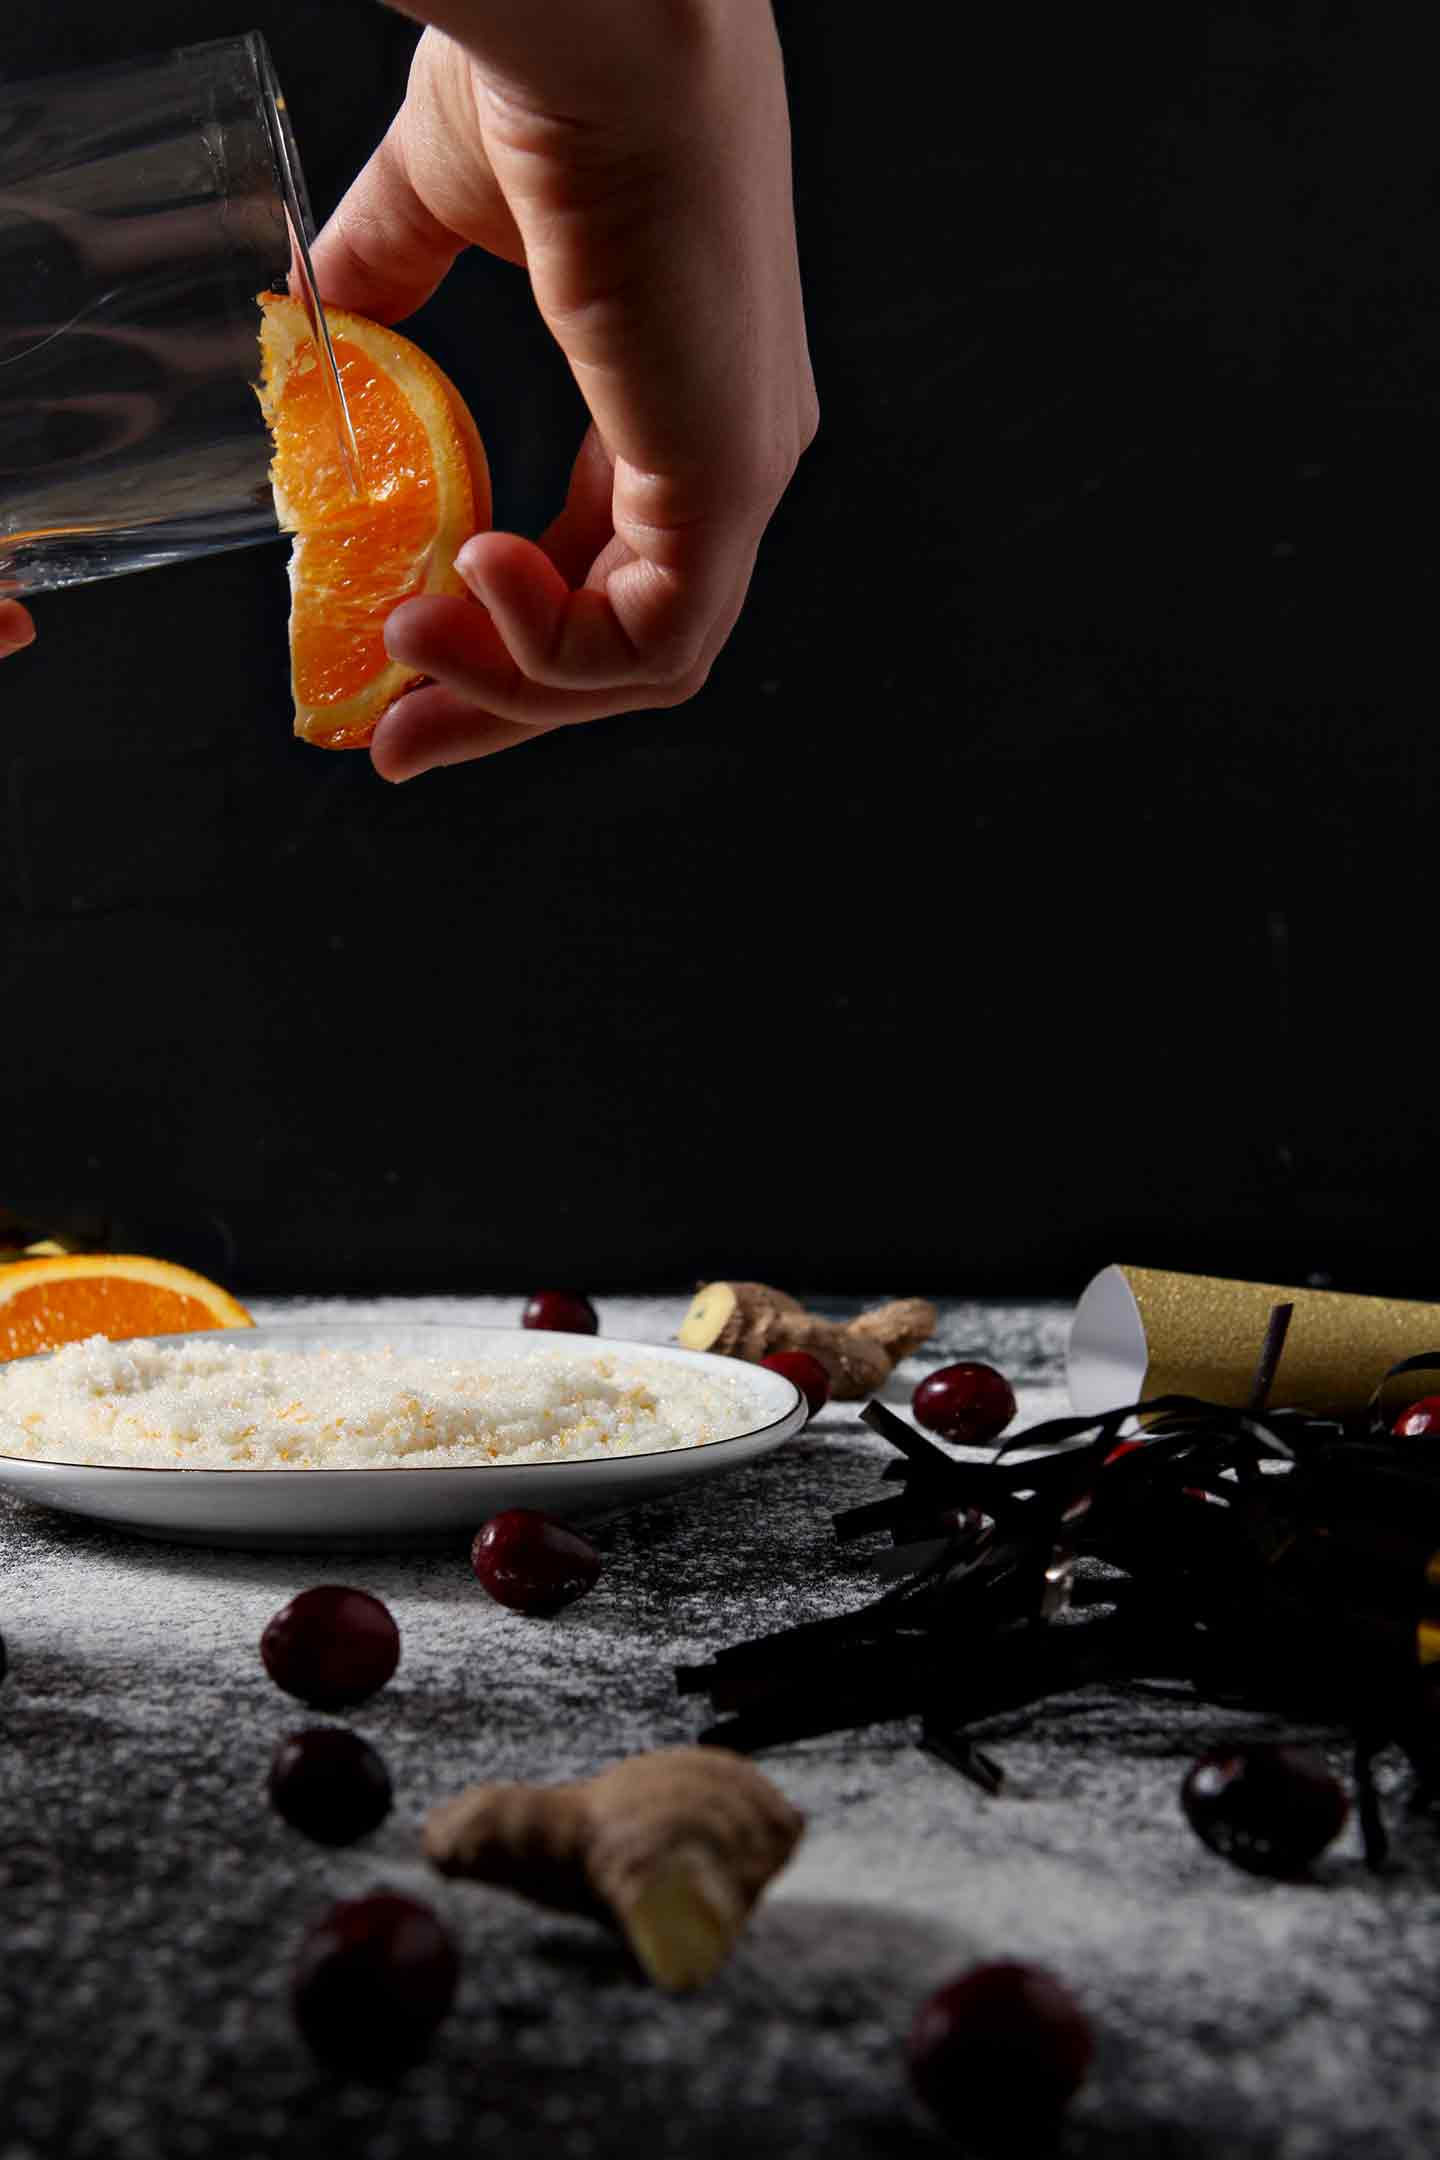 An orange is rubbed along the rim of a glass before it is dipped in orange sugar